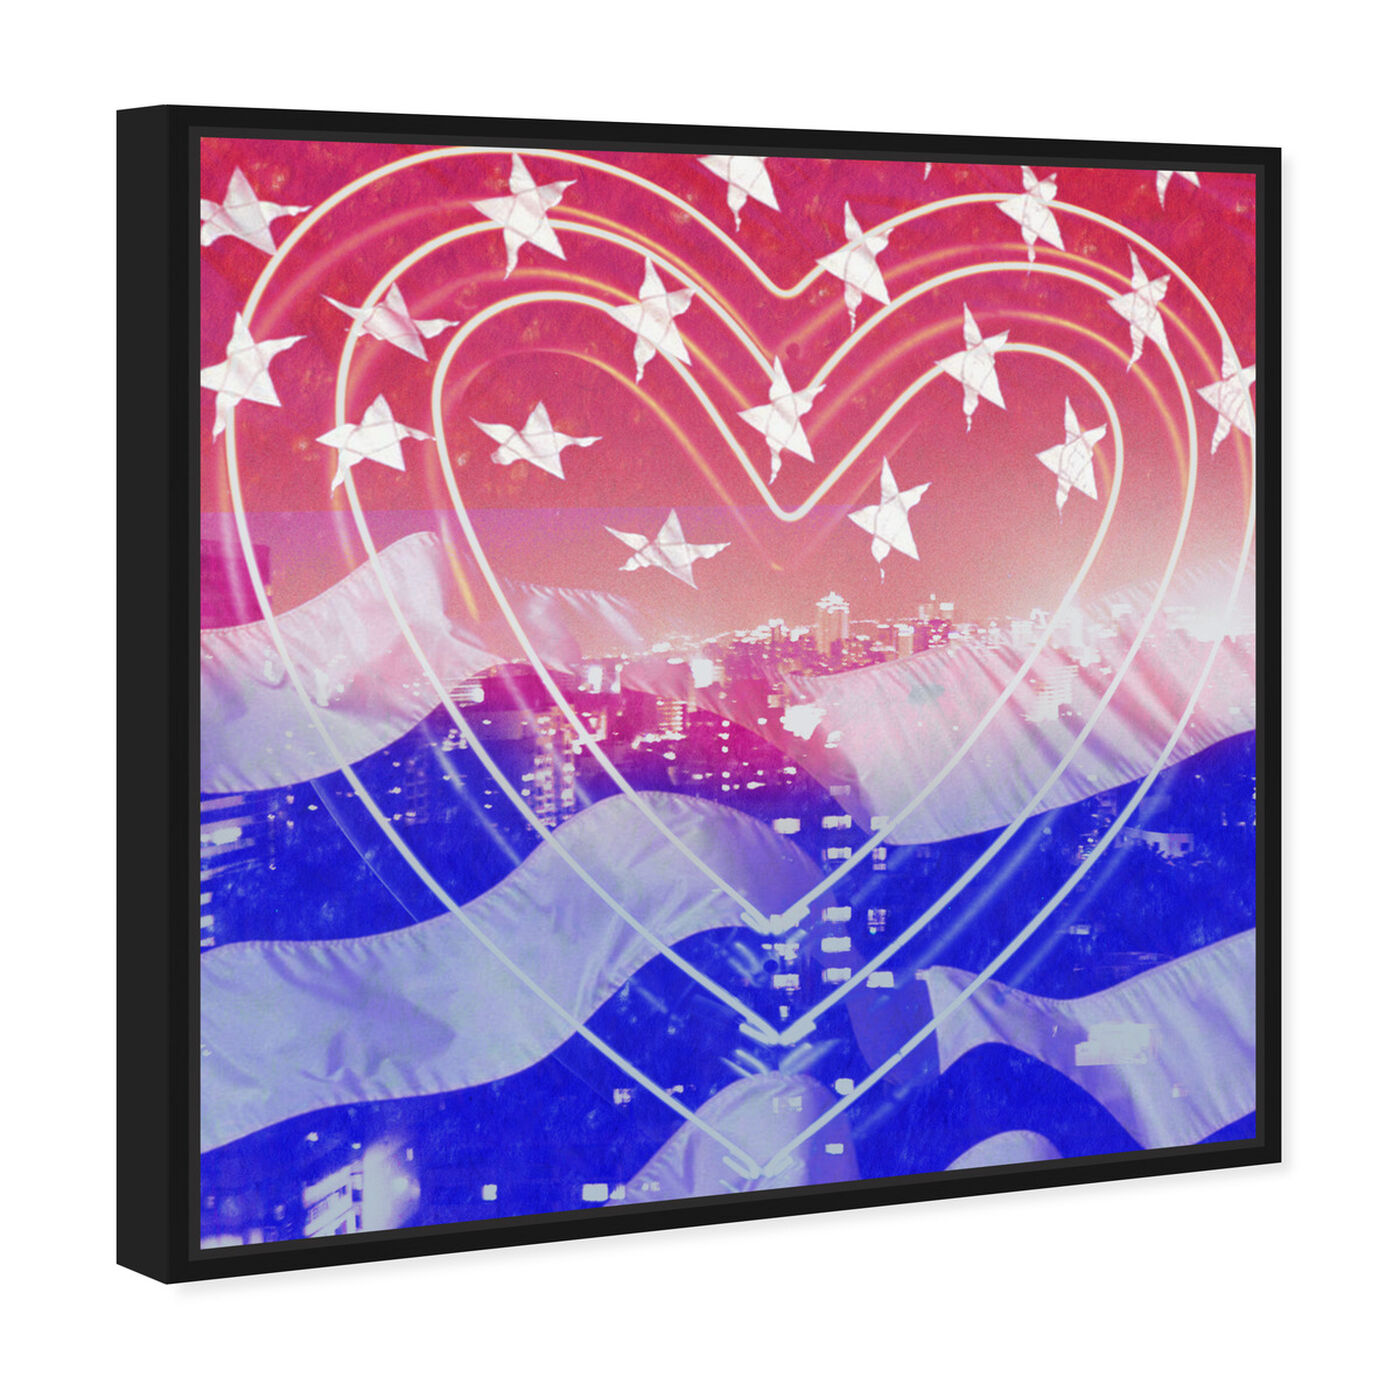 Angled view of American Neon Heart featuring americana and patriotic and us flags art.